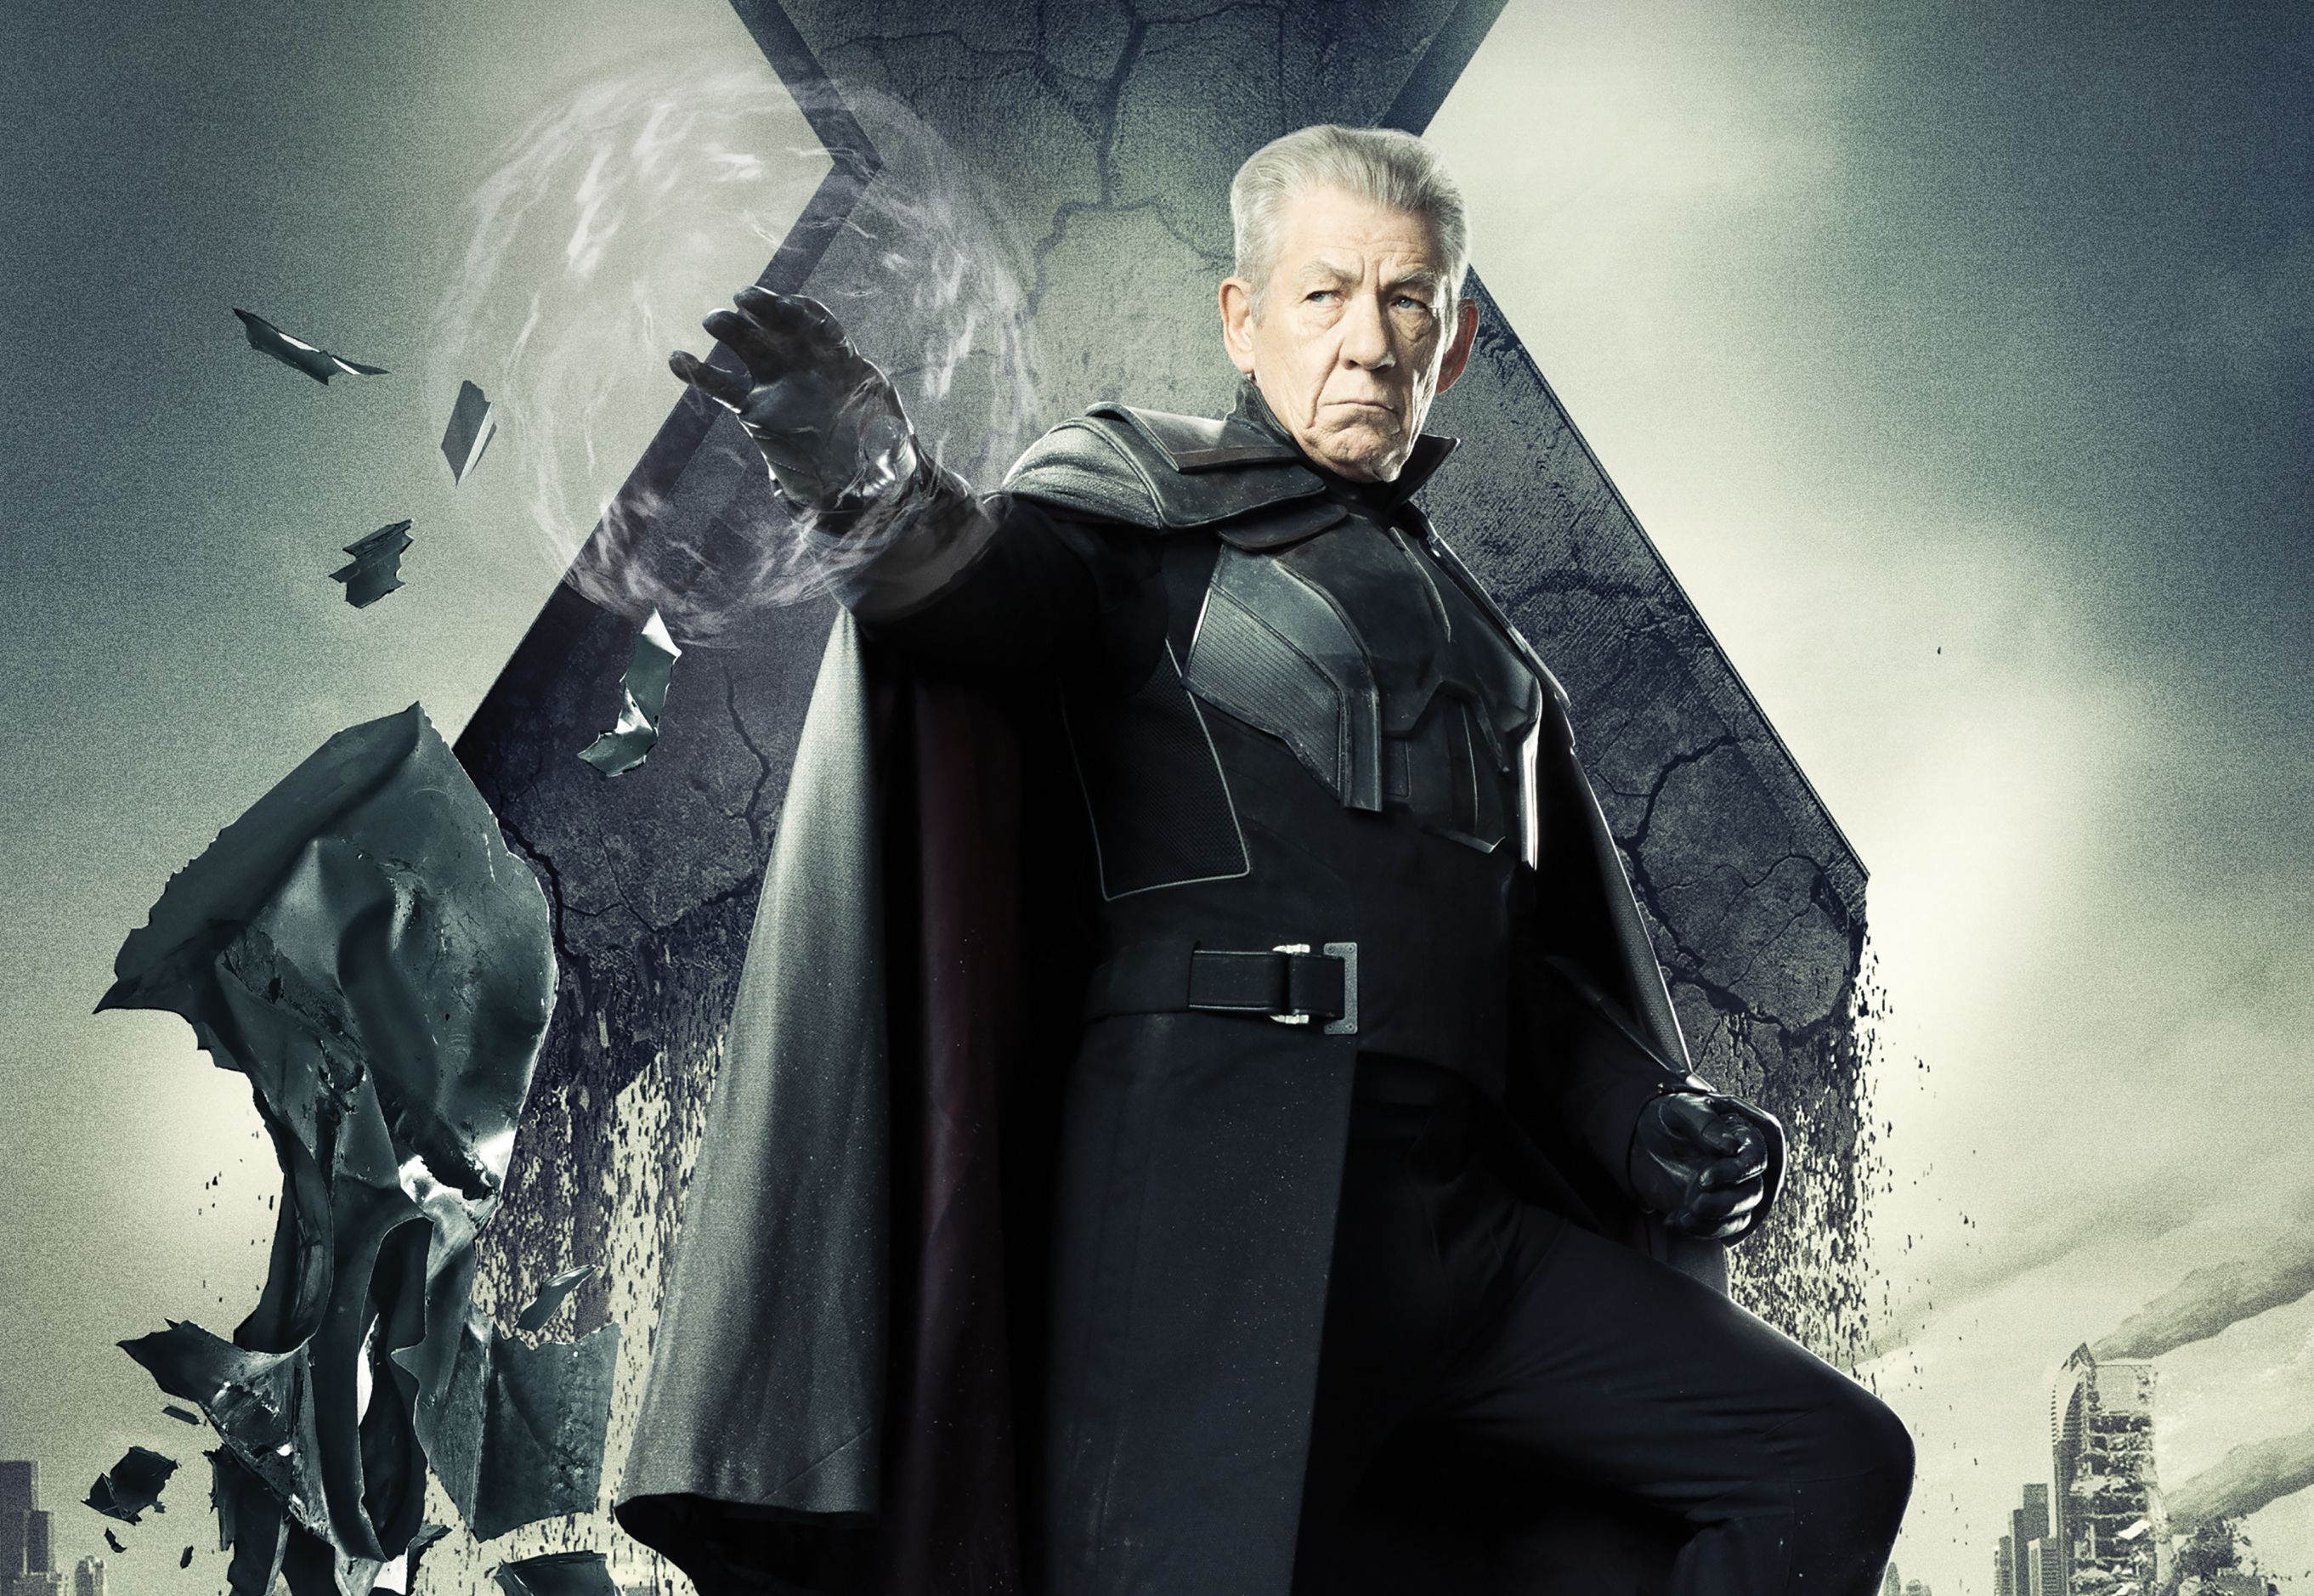 X Men Days Of Future Past Old Magneto Wallpaper X Men Days Of Future Past Ian Mckellen